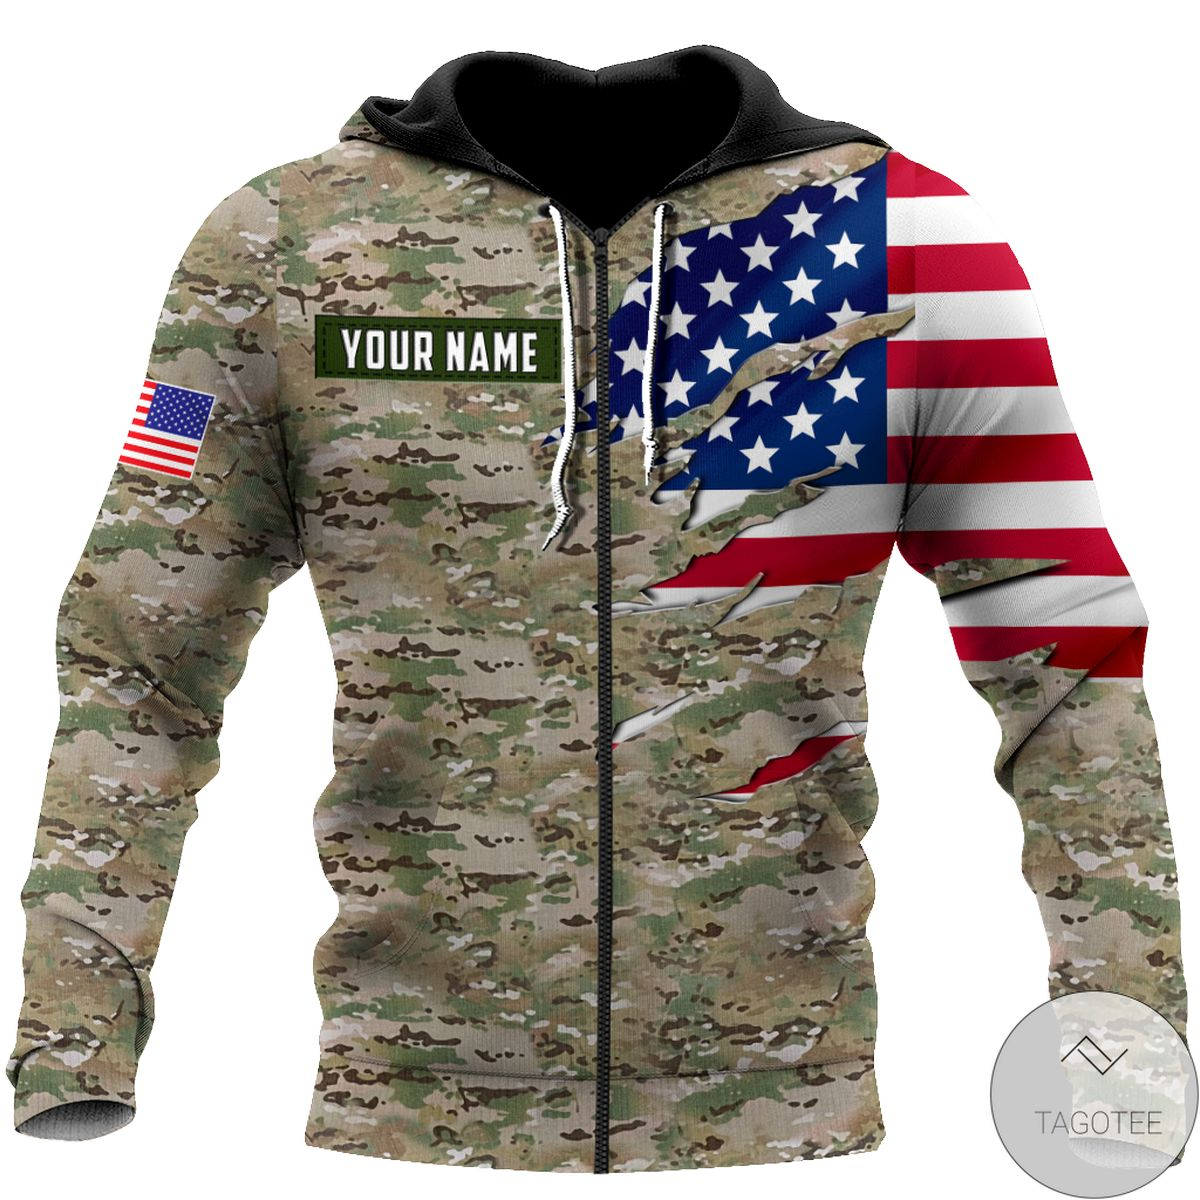 Beautiful Remembrance The United States Camo Soldier 3D All Over Print Hoodie